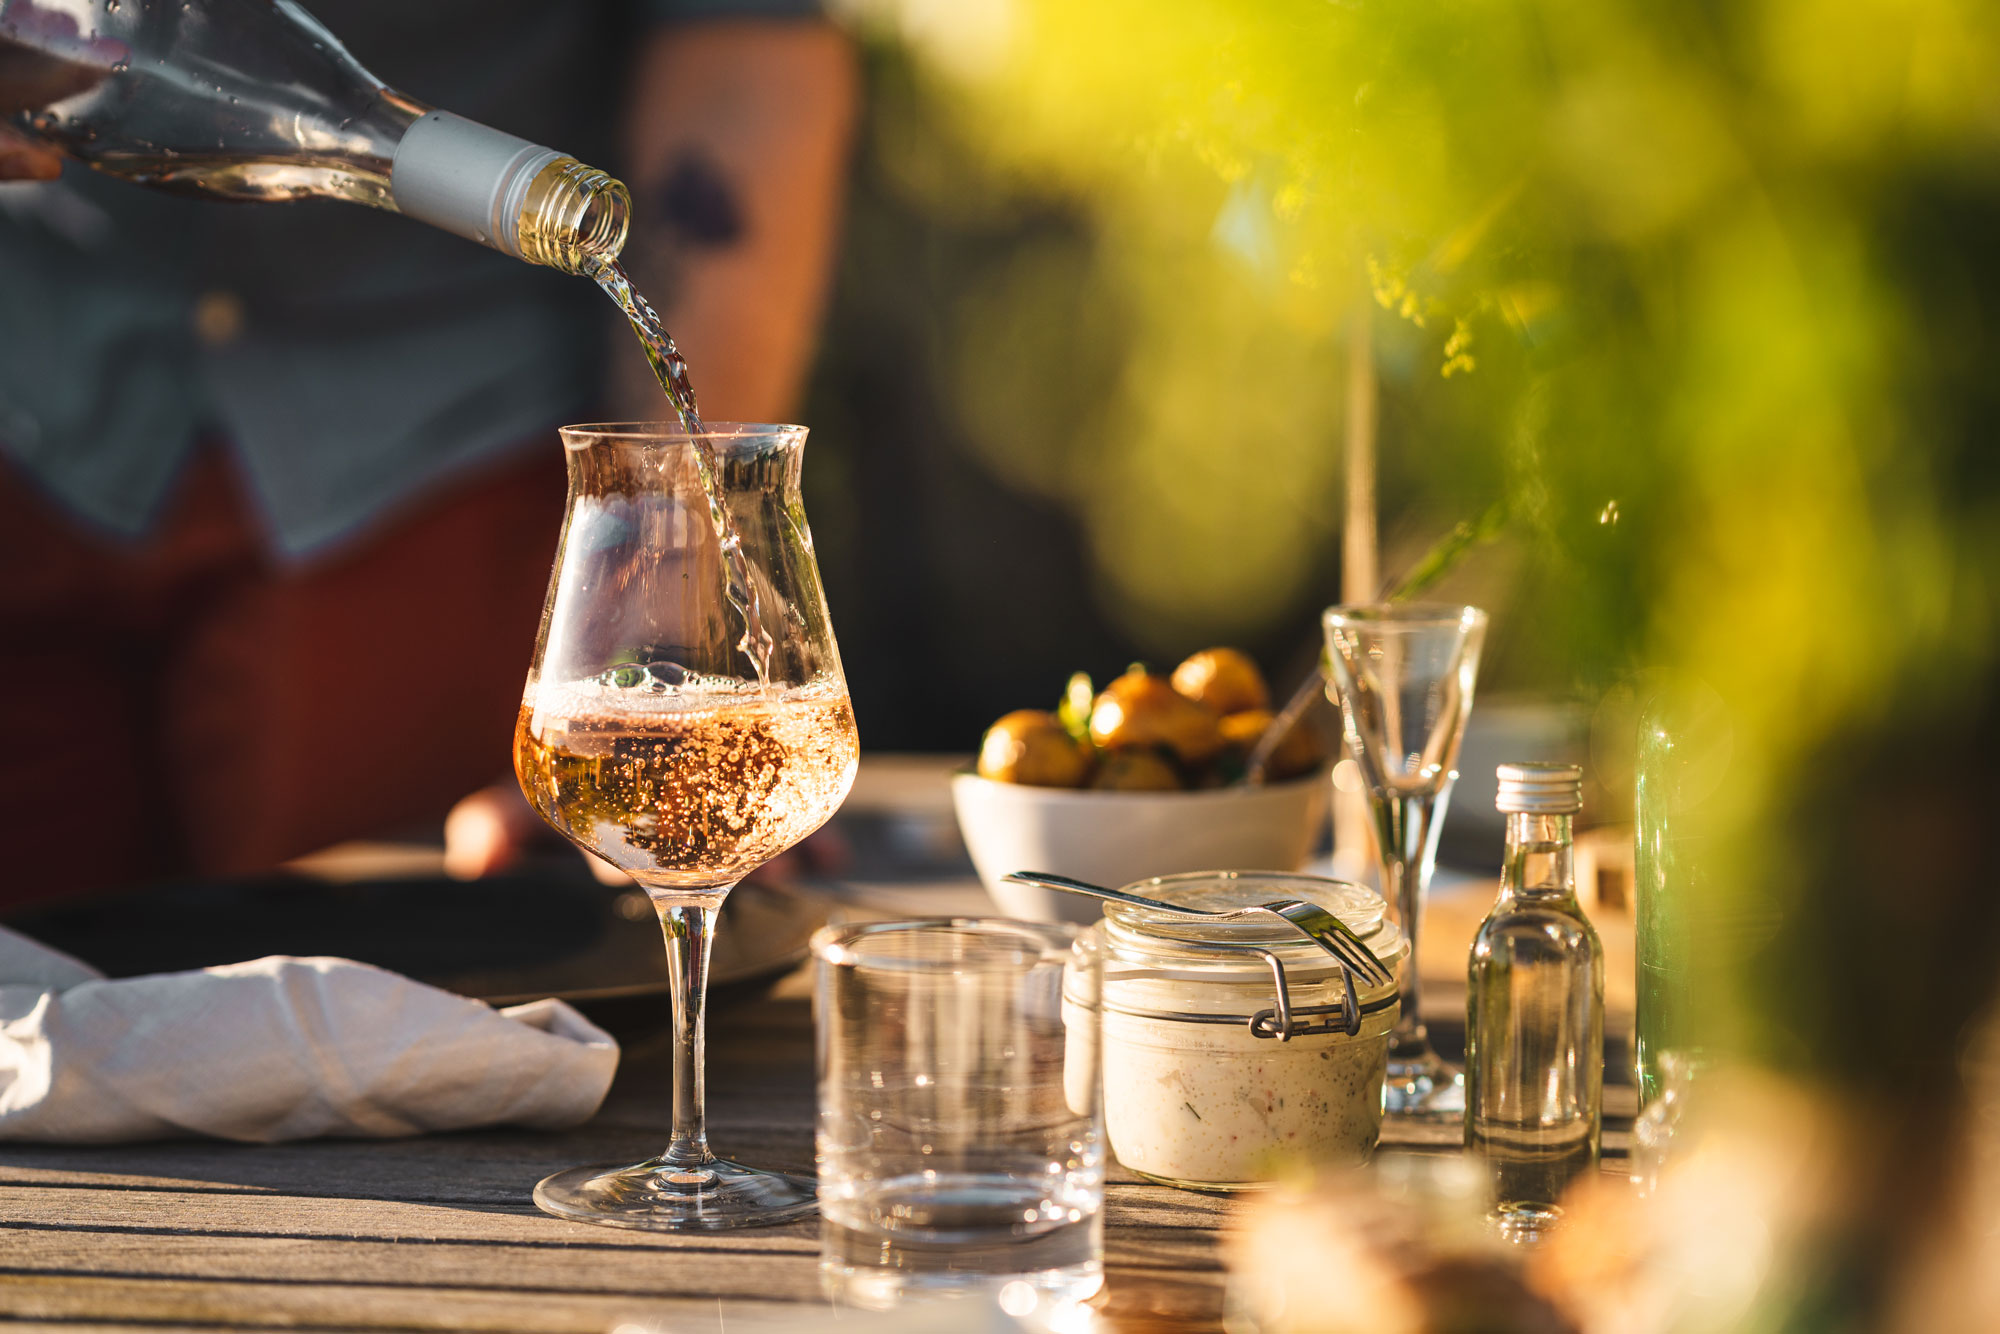 Man pouring up rose wine outdoors